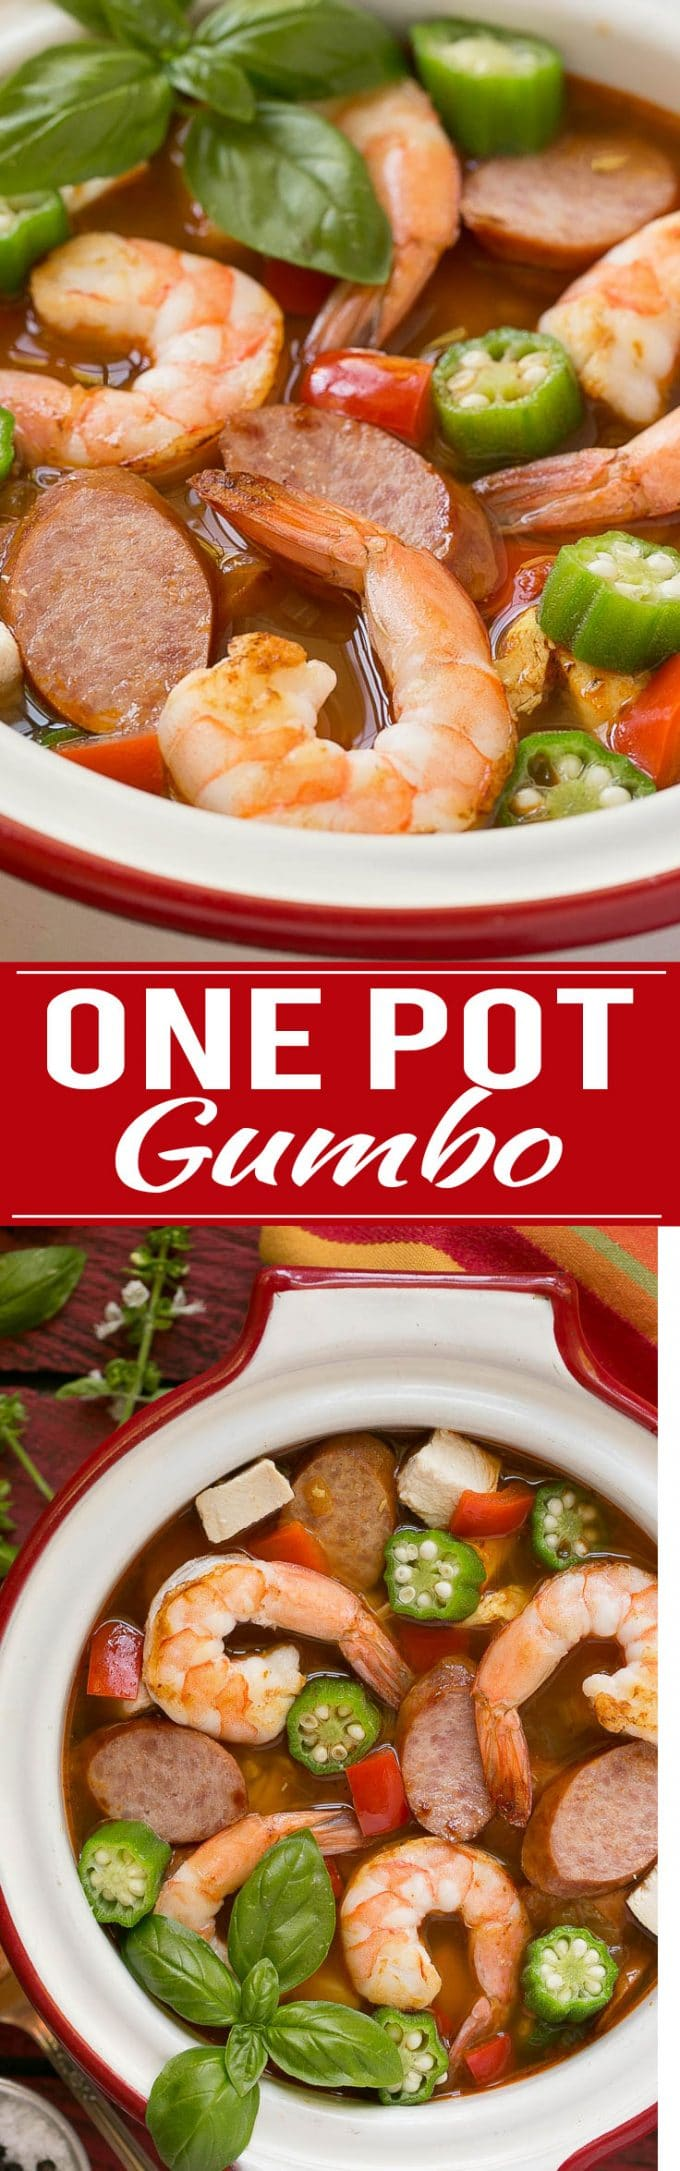 One Pot Chicken and Shrimp Gumbo Recipe | Easy Chicken and Shrimp Gumbo | One Pot Chicken and Shrimp Gumbo | Best Chicken and Shrimp Gumbo | Best Chicken and Shrimp Gumbo | Best One Pot Gumbo | Easy One Pot Gumbo